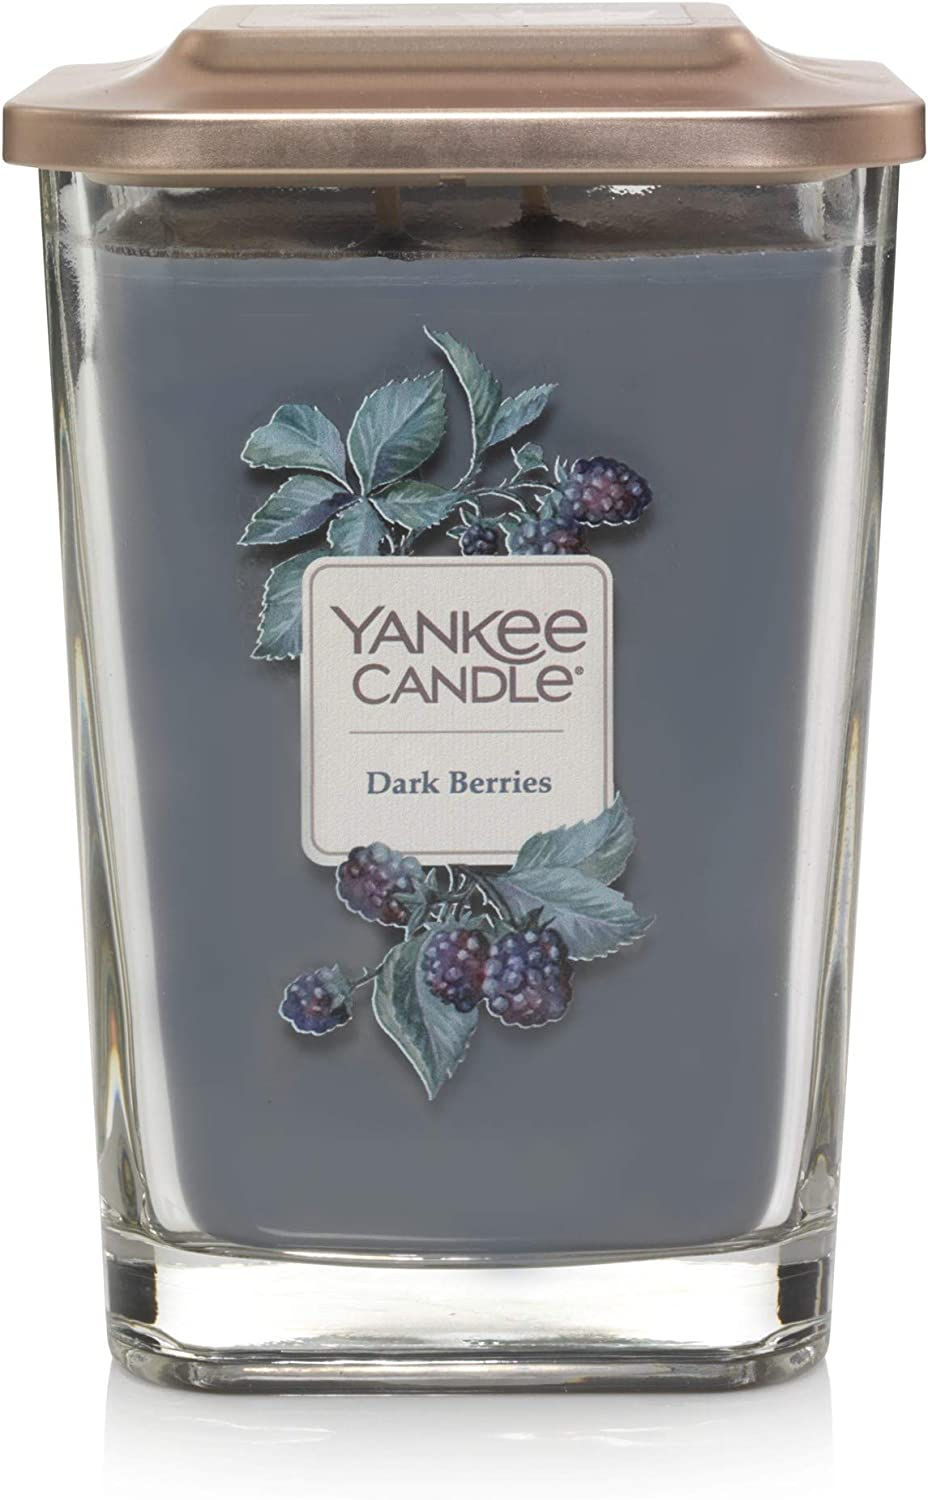 Yankee Candle Elevation Collection with Platform Lid Dark Berries Scented Candle, Large 2-Wick, 80 Hour Burn Time